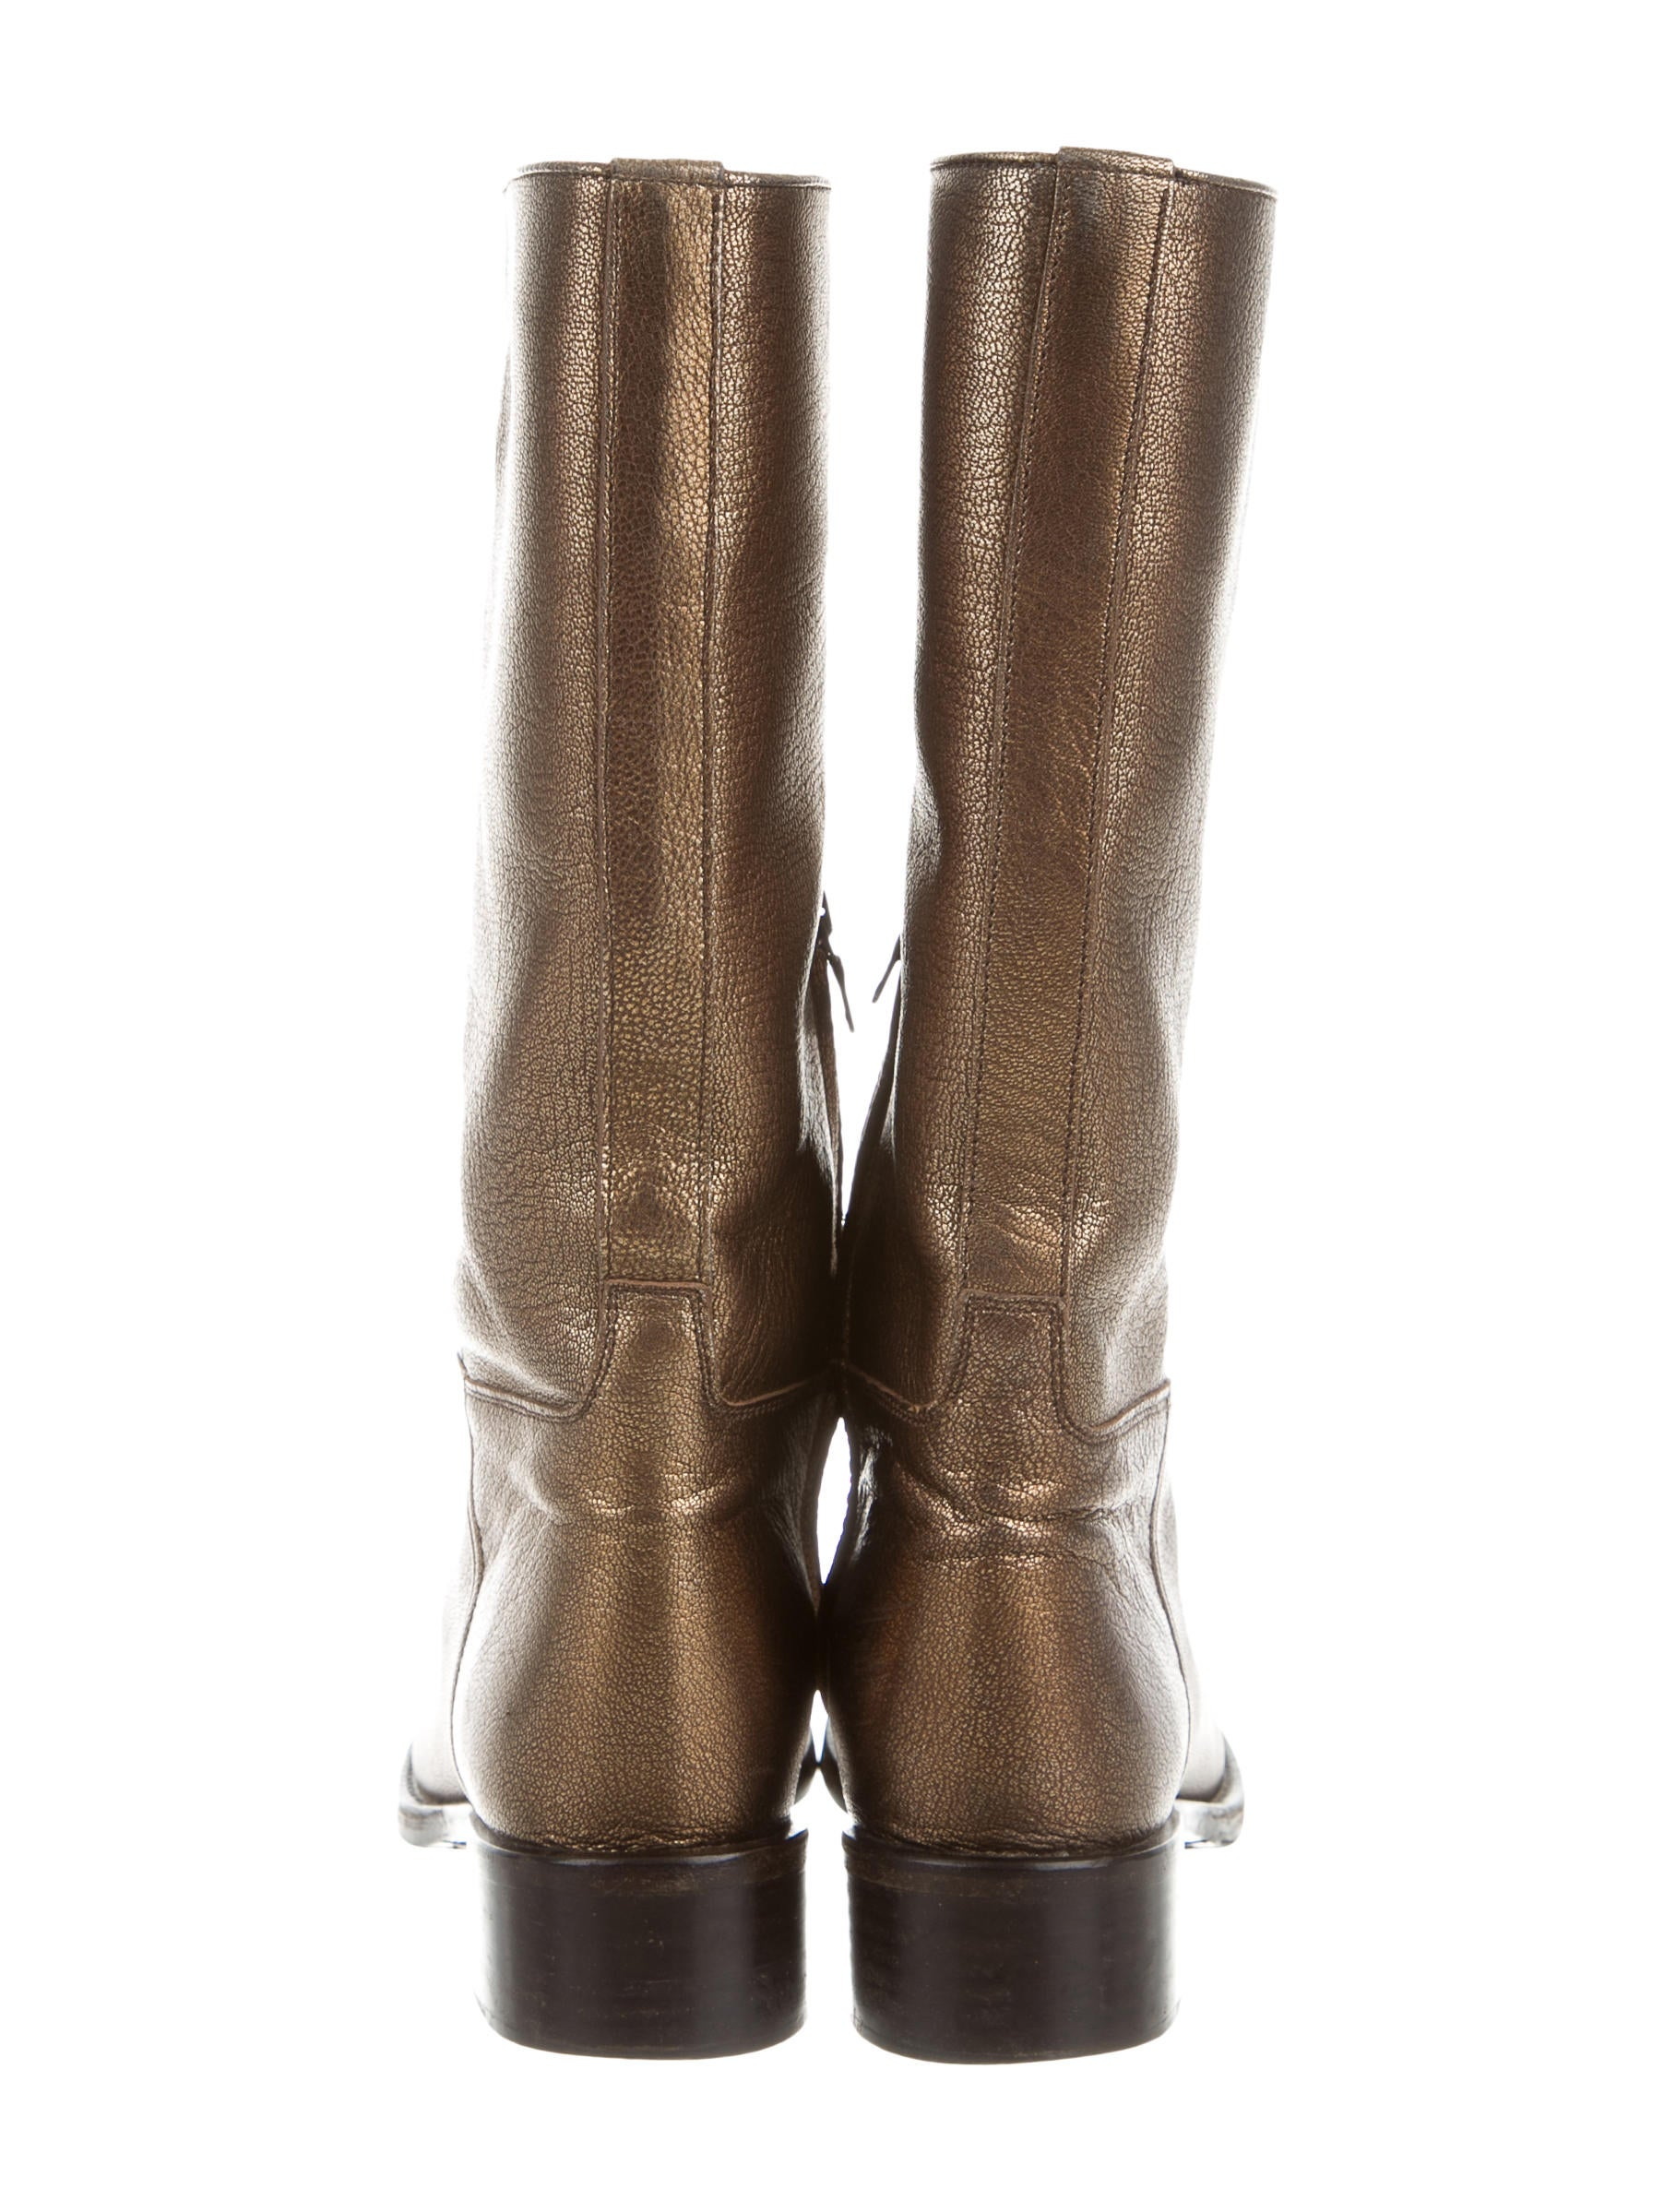 Metallic Leather Boots : Prada metallic leather boots shoes pra the